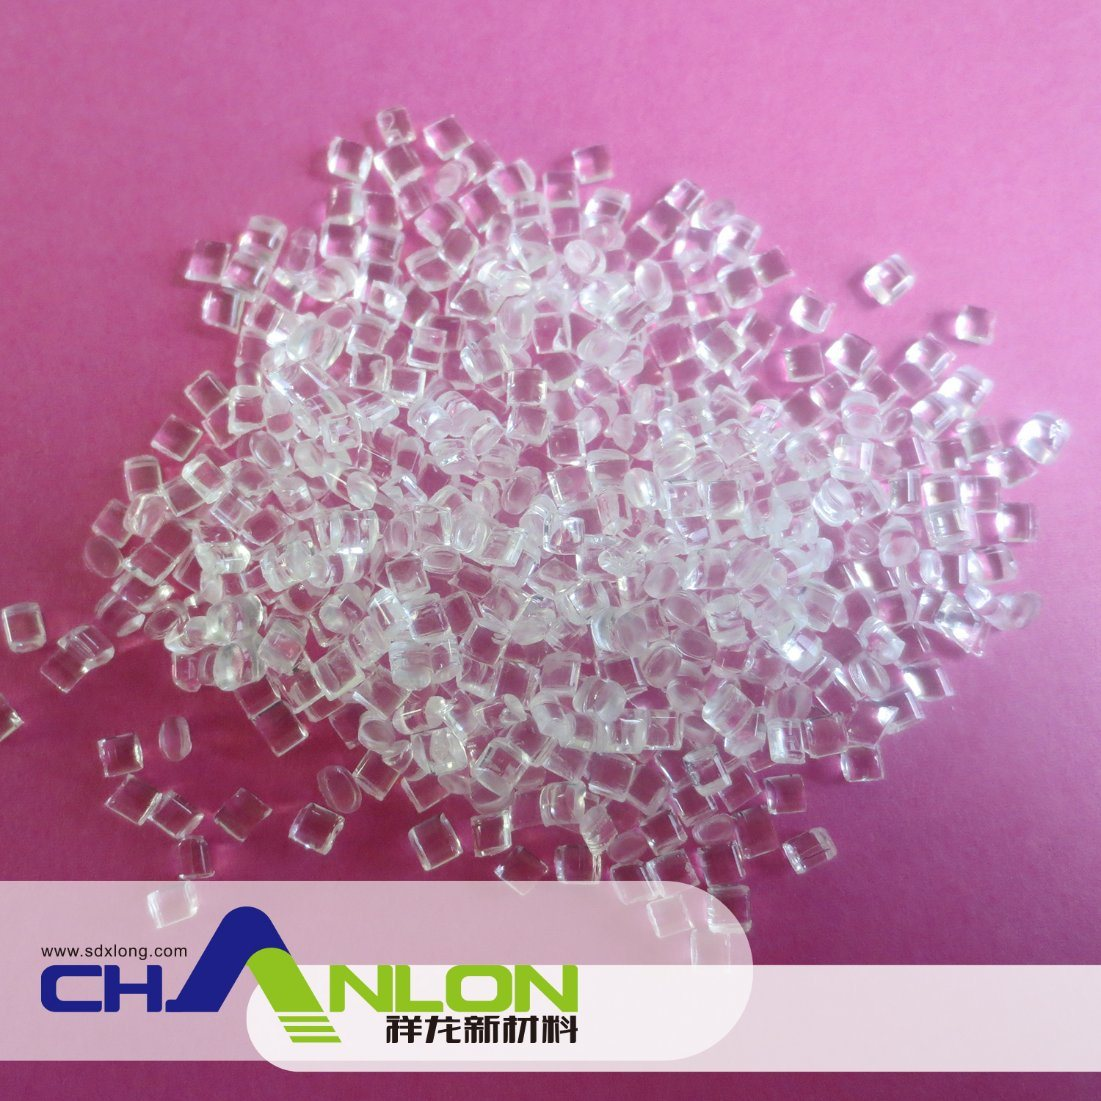 Best Amorphous Nylon, High Quality Nylon12, Amorphous Transparent Polymide